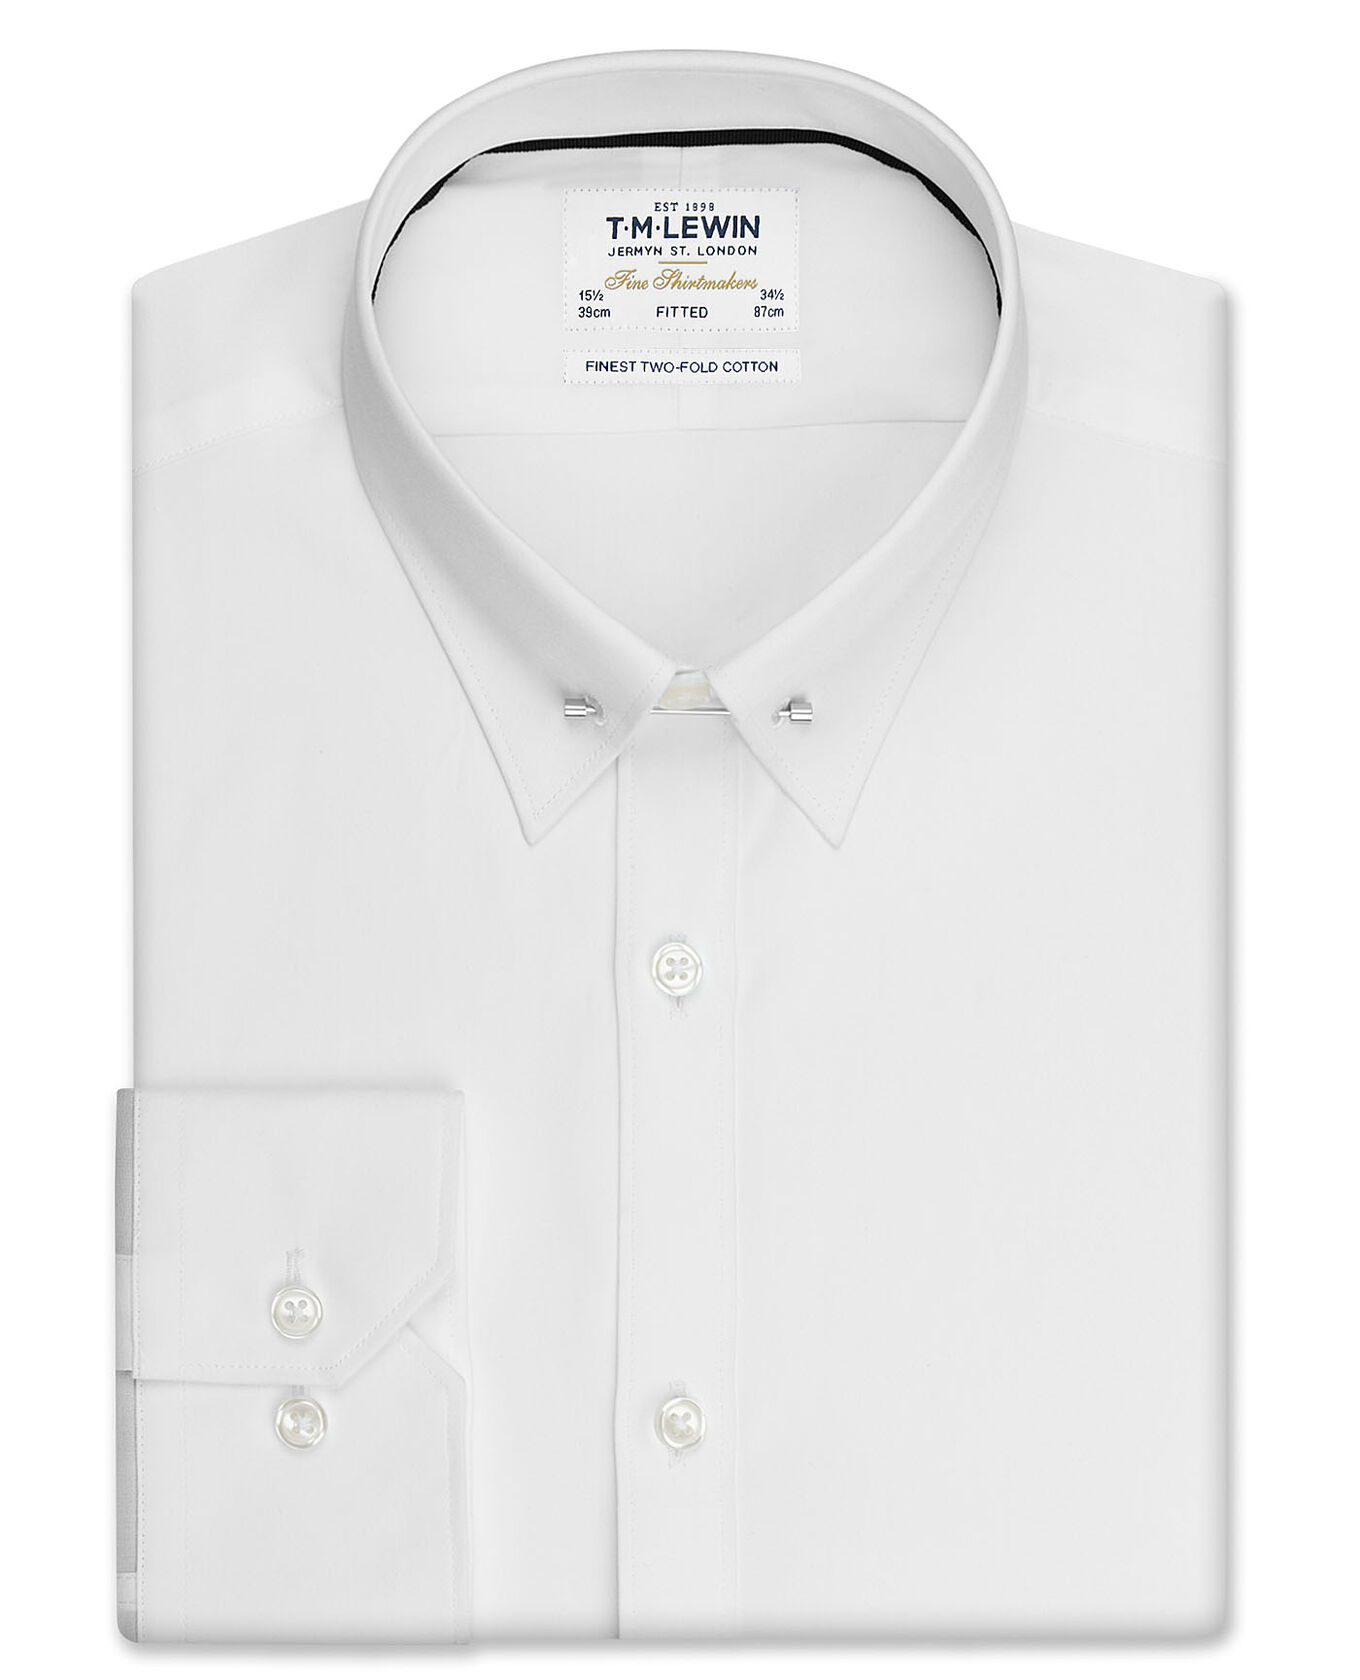 Fitted White Pin Collar Poplin – Dual Cuff